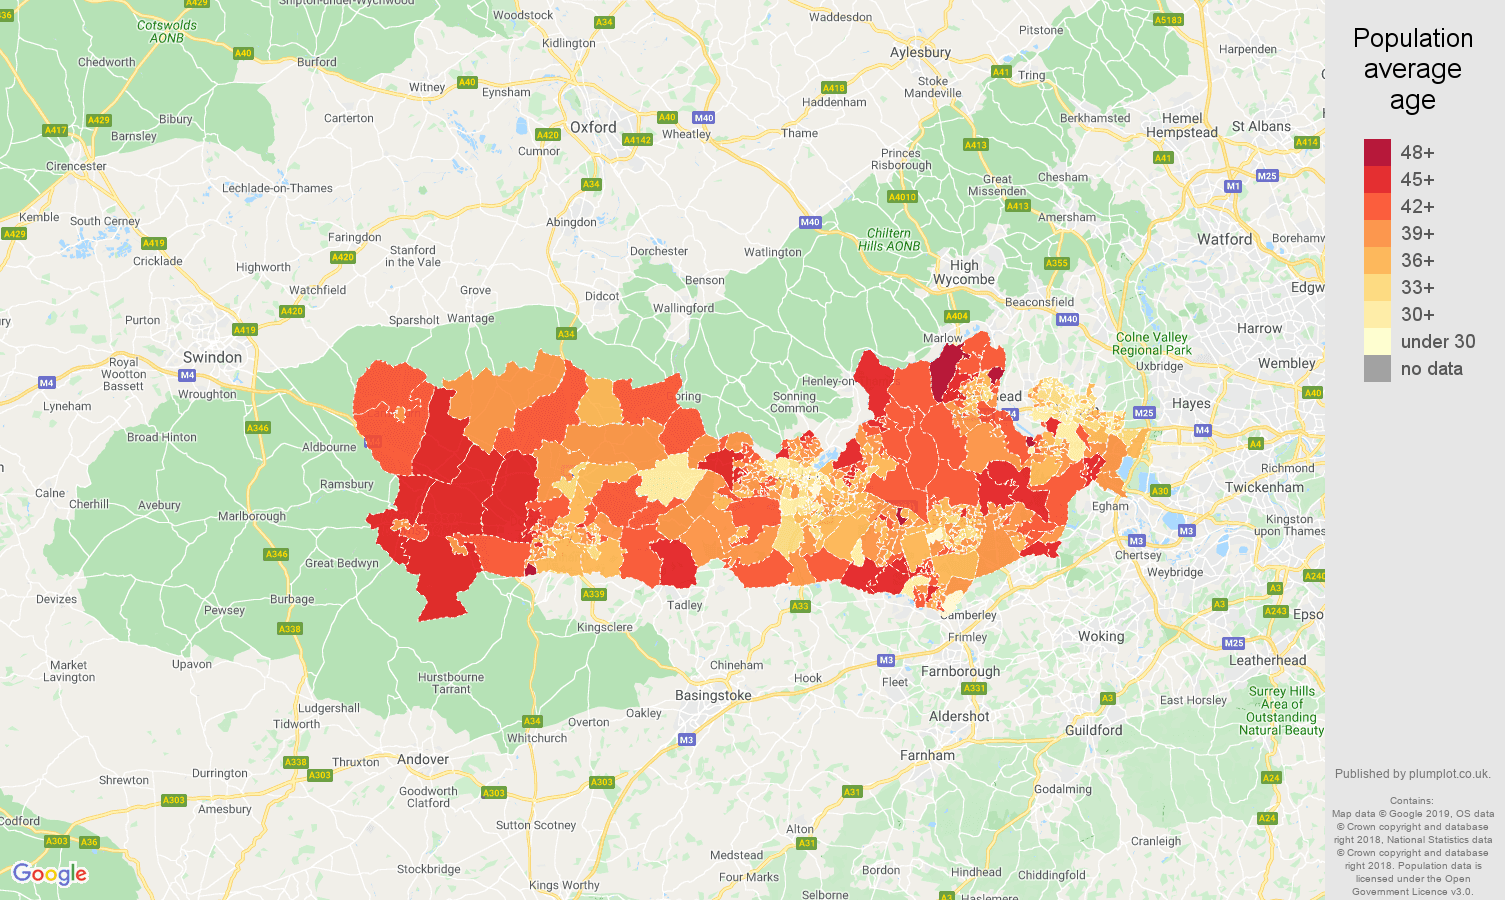 Berkshire population average age map